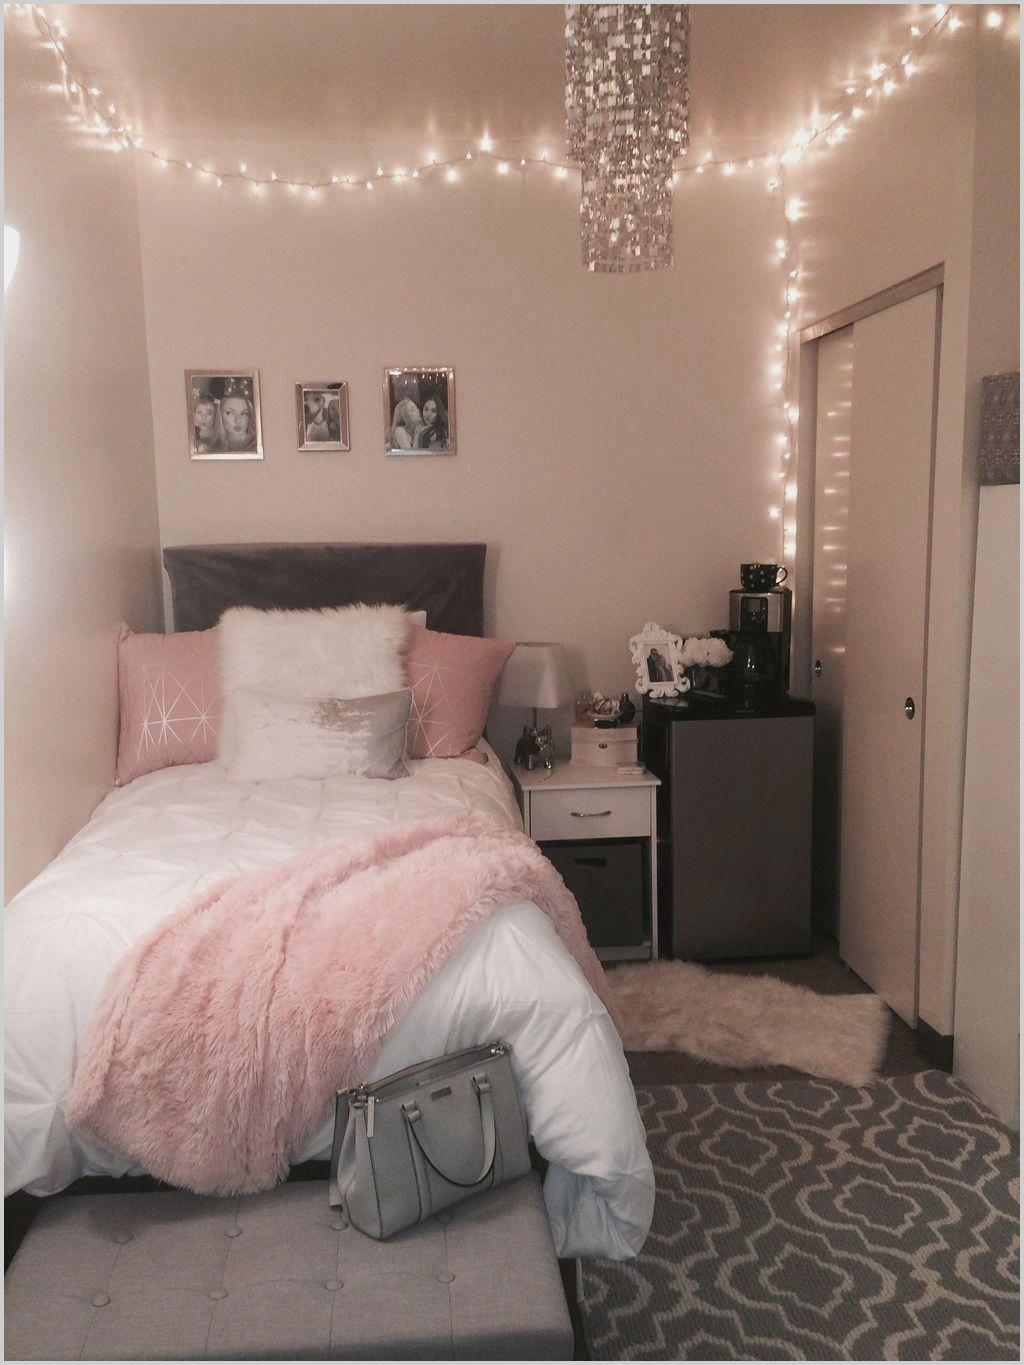 Bedroom Ideas for Teens On A Budget  Dorm room decor, Dorm room